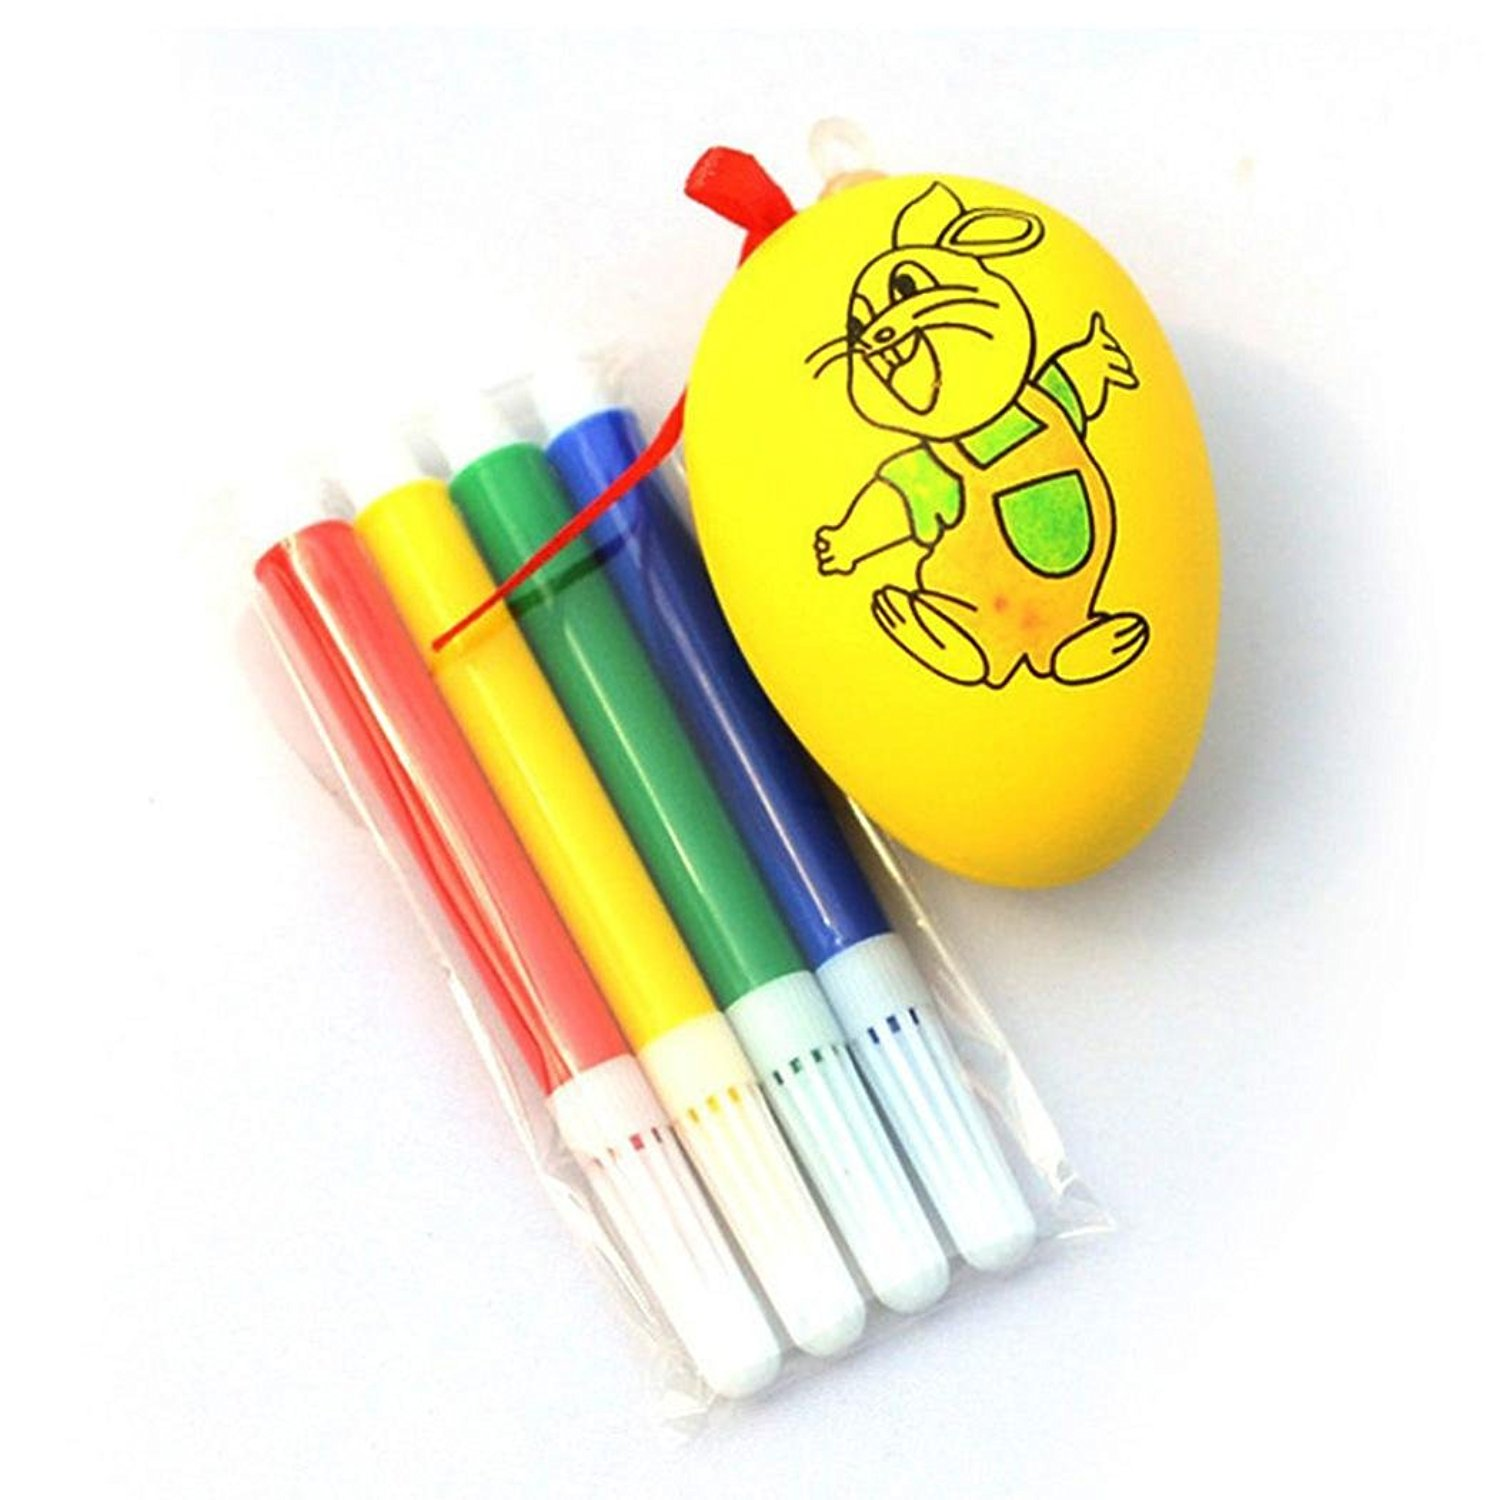 Easter Egg Education Toys(4.5x6CM),Tuscom Water Color Pen & Egg Kids DIY Painting Color Egg Toy